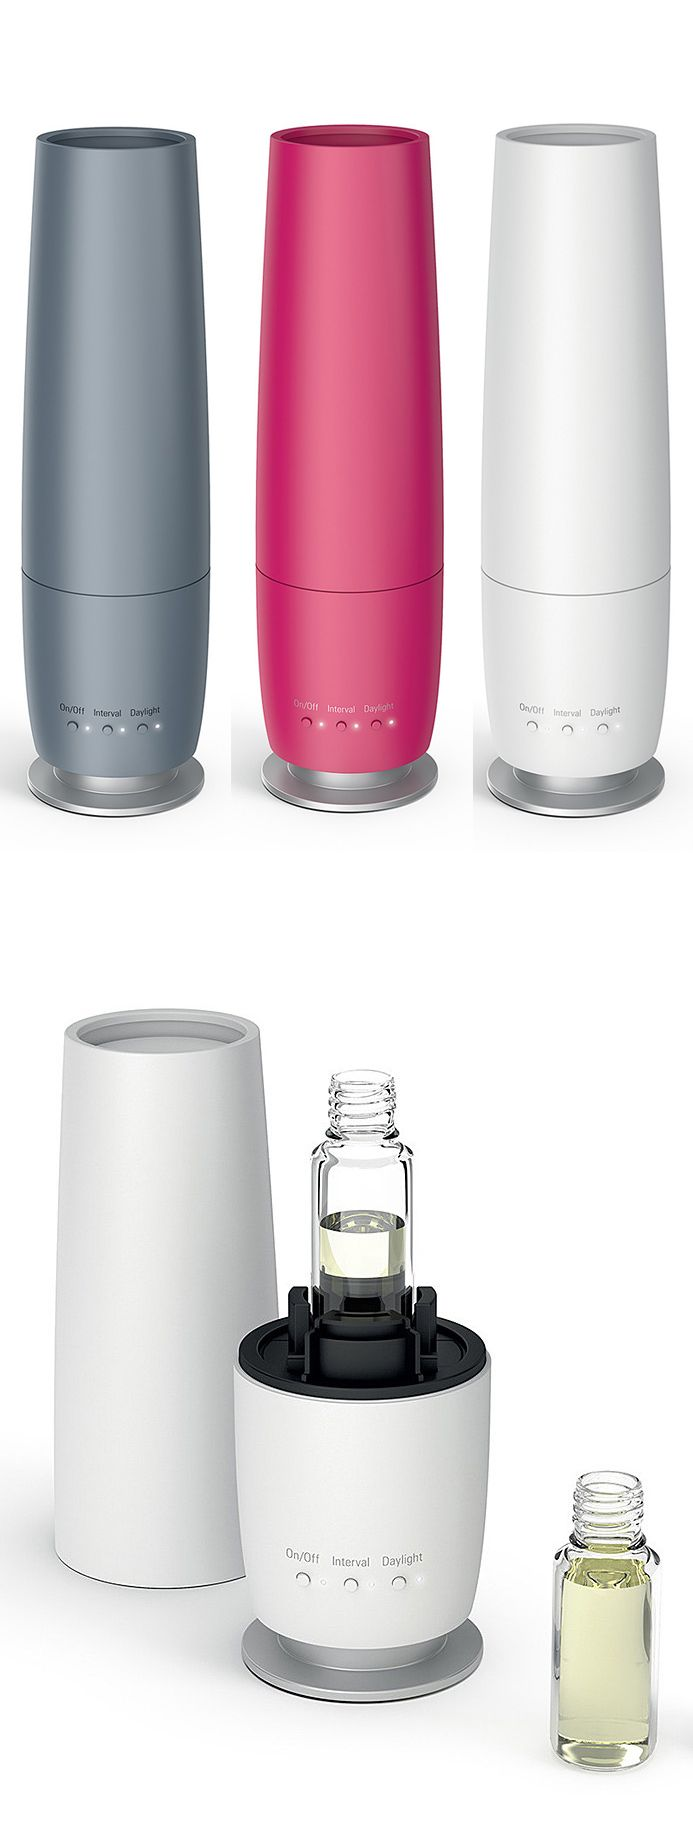 Lea Aroma Diffuser - Simply fill the tank with an essential oil. Has a continuous interval function that releases a steady stream every 10 minutes followed by a 20-minute break.